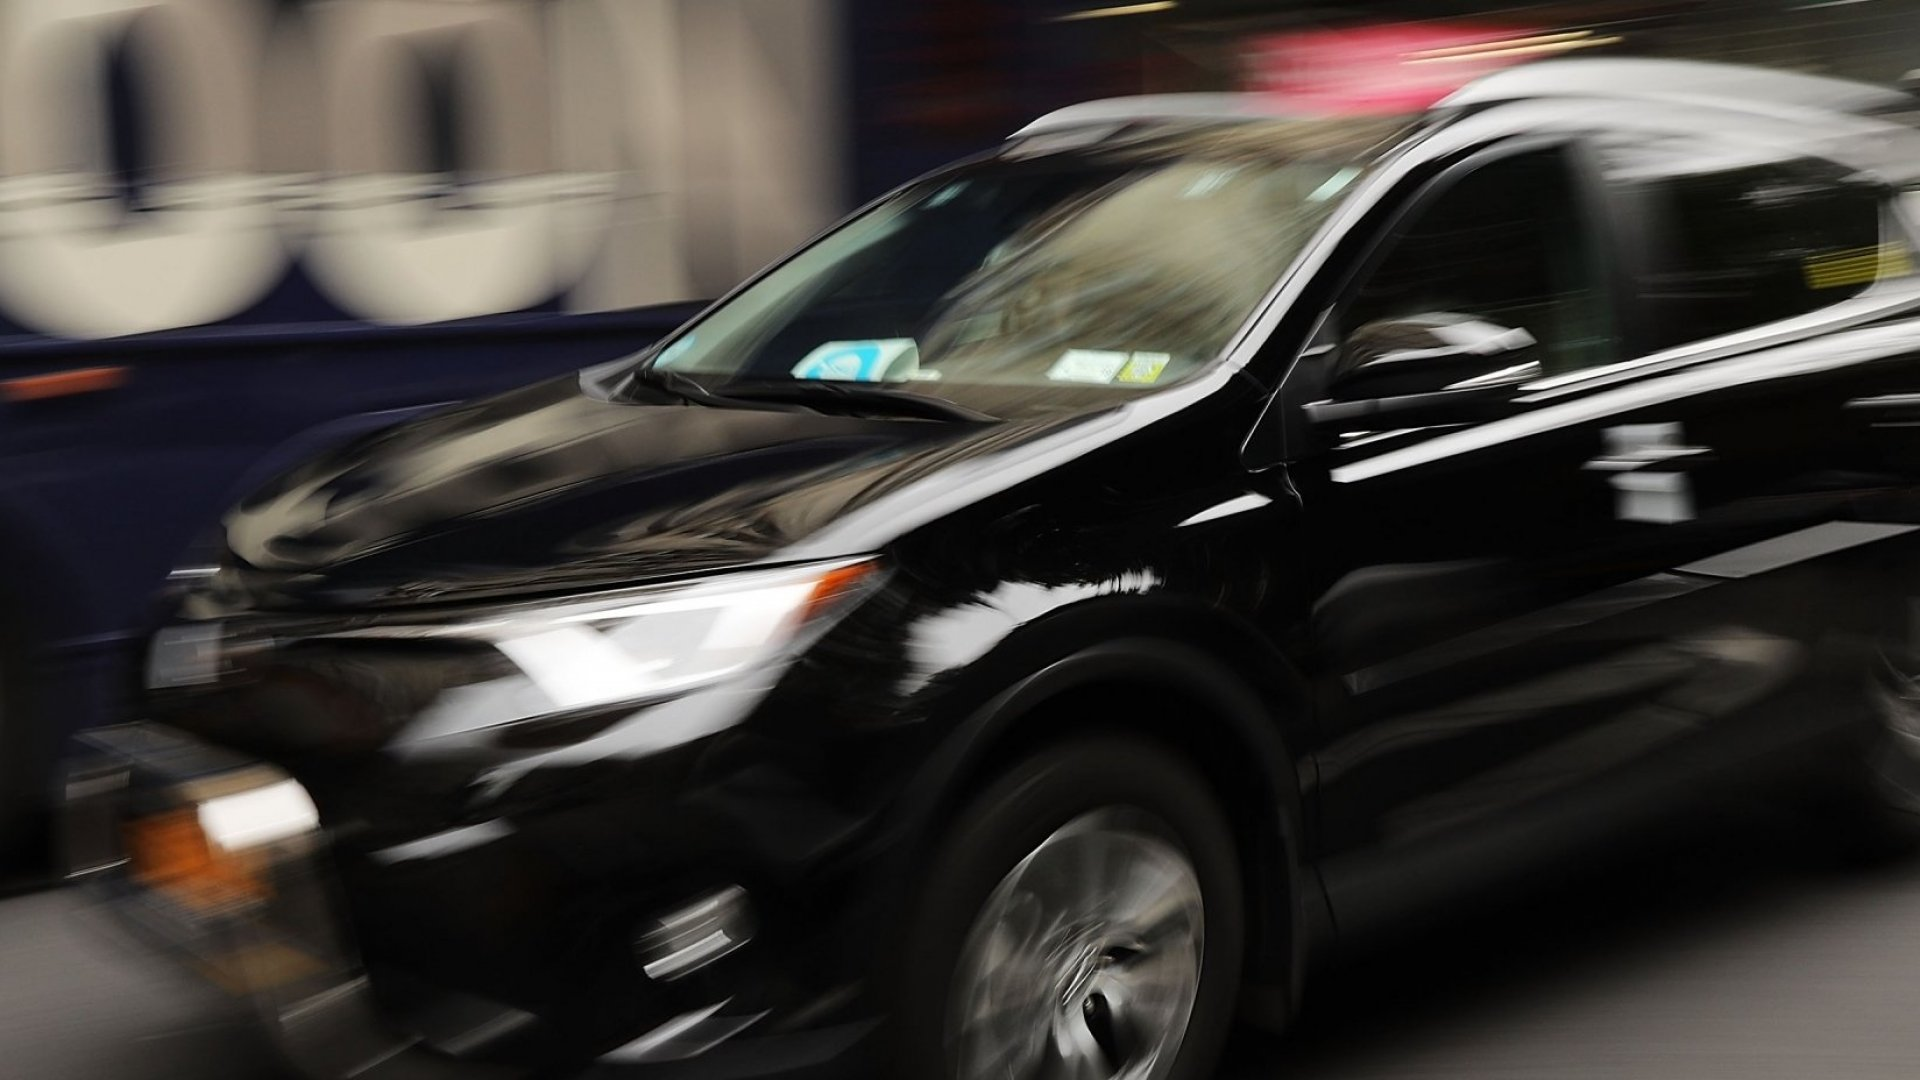 Here's Why Uberand Lyft Drivers Are Artificially Creating Surge Prices